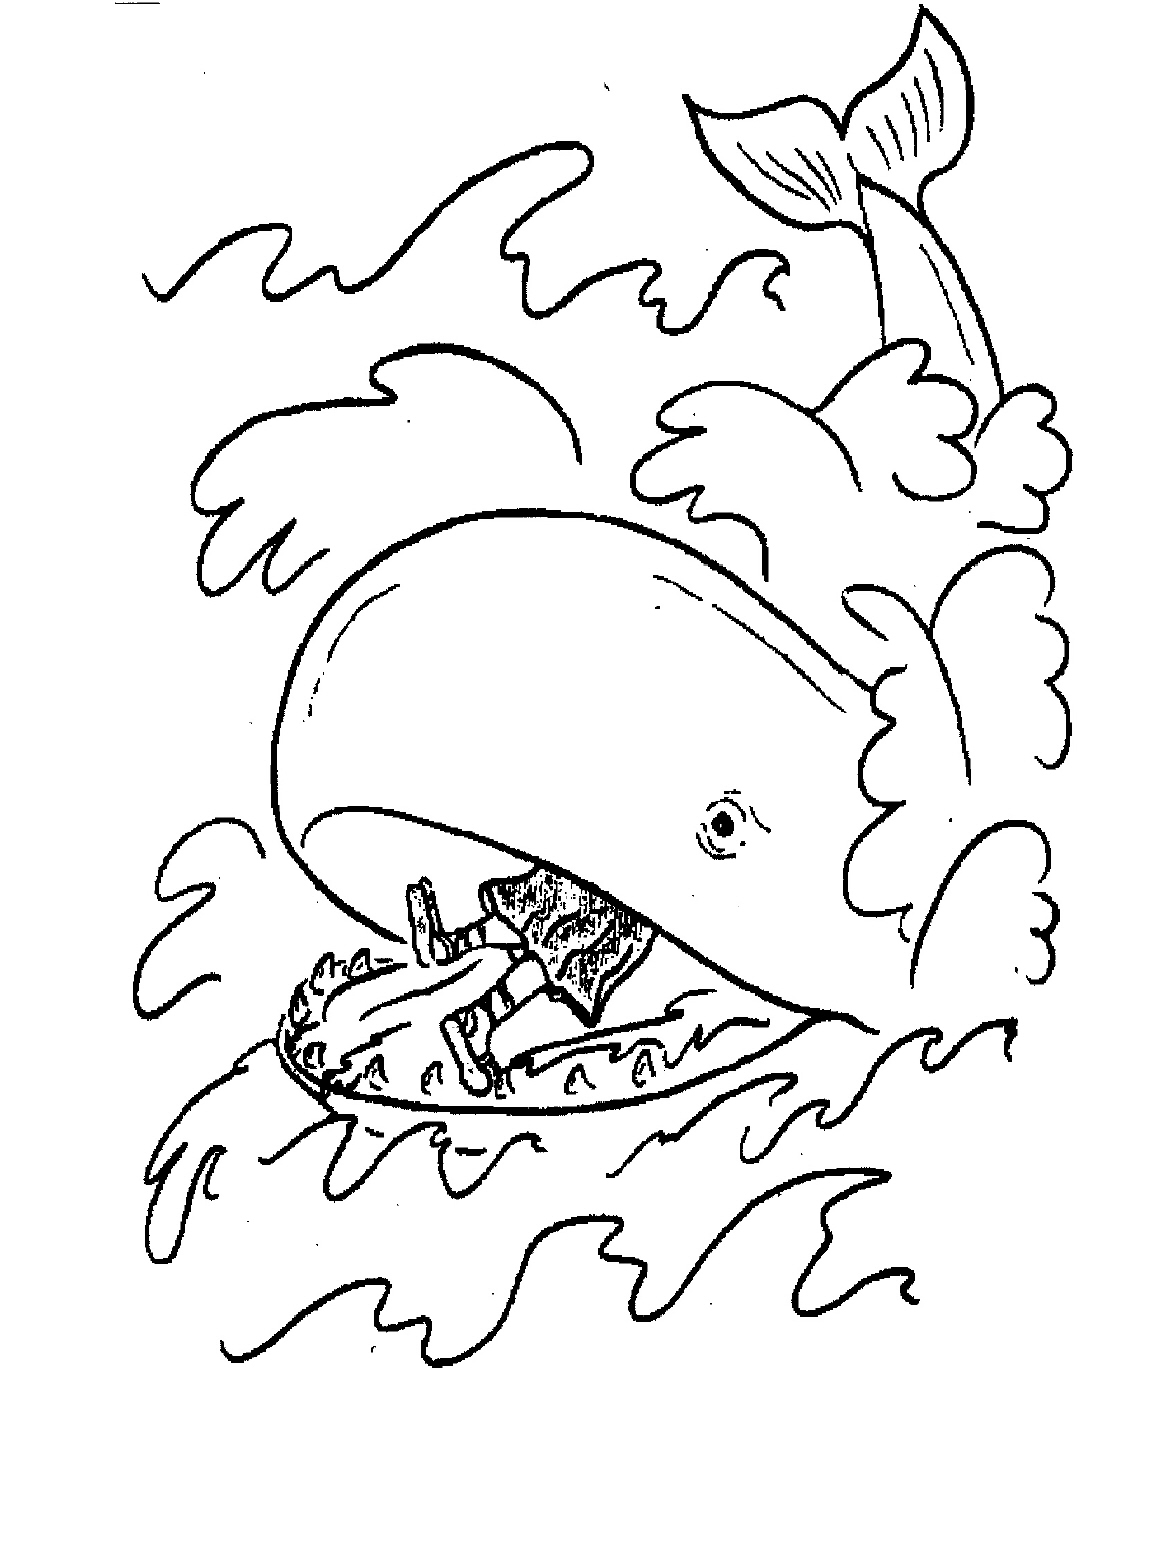 jonah and the whale colouring jonah and the whale colouring the jonah and colouring whale